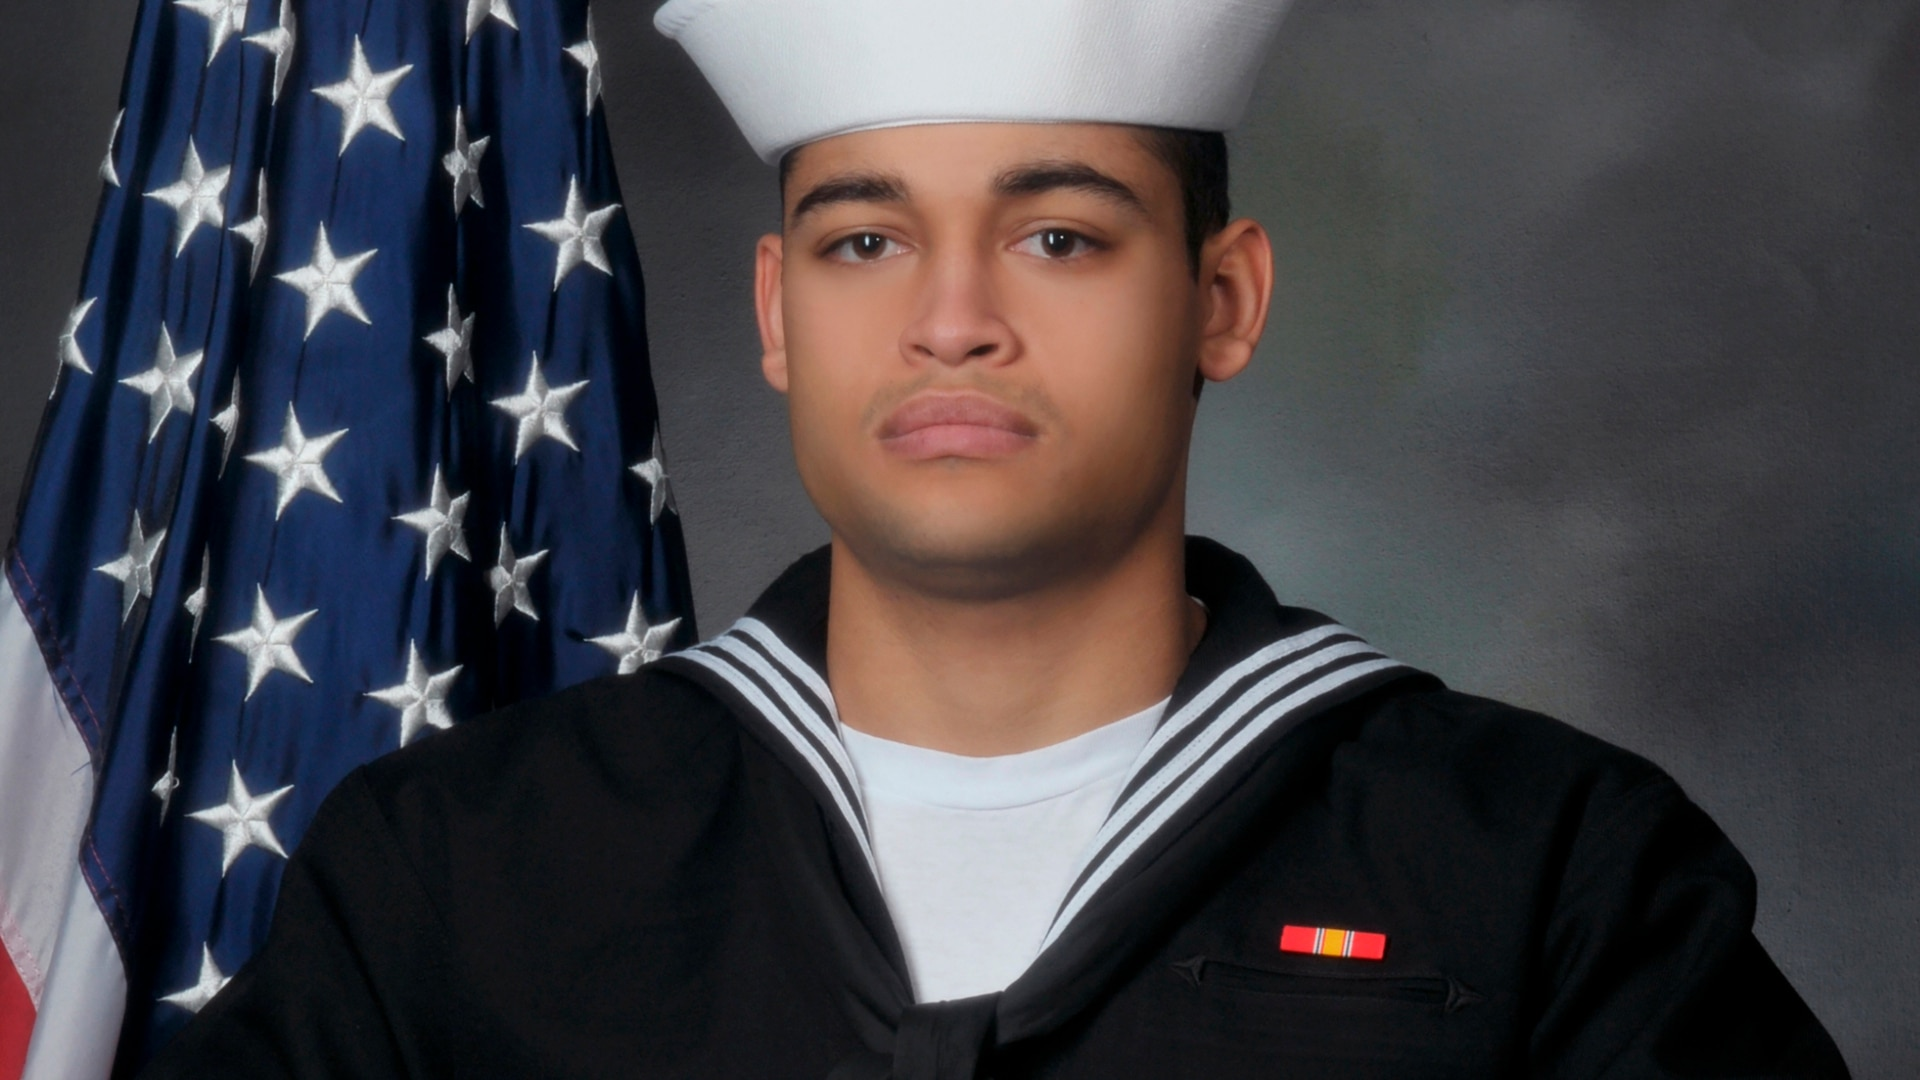 Machinist's Mate Auxiliary Fireman Gabriel Antonio Romero, 22, shot and killed two Pearl Harbor Naval Shipyard workers, and wounded another, with his service weapon before taking his own life on Dec. 4, 2019. (Navy)